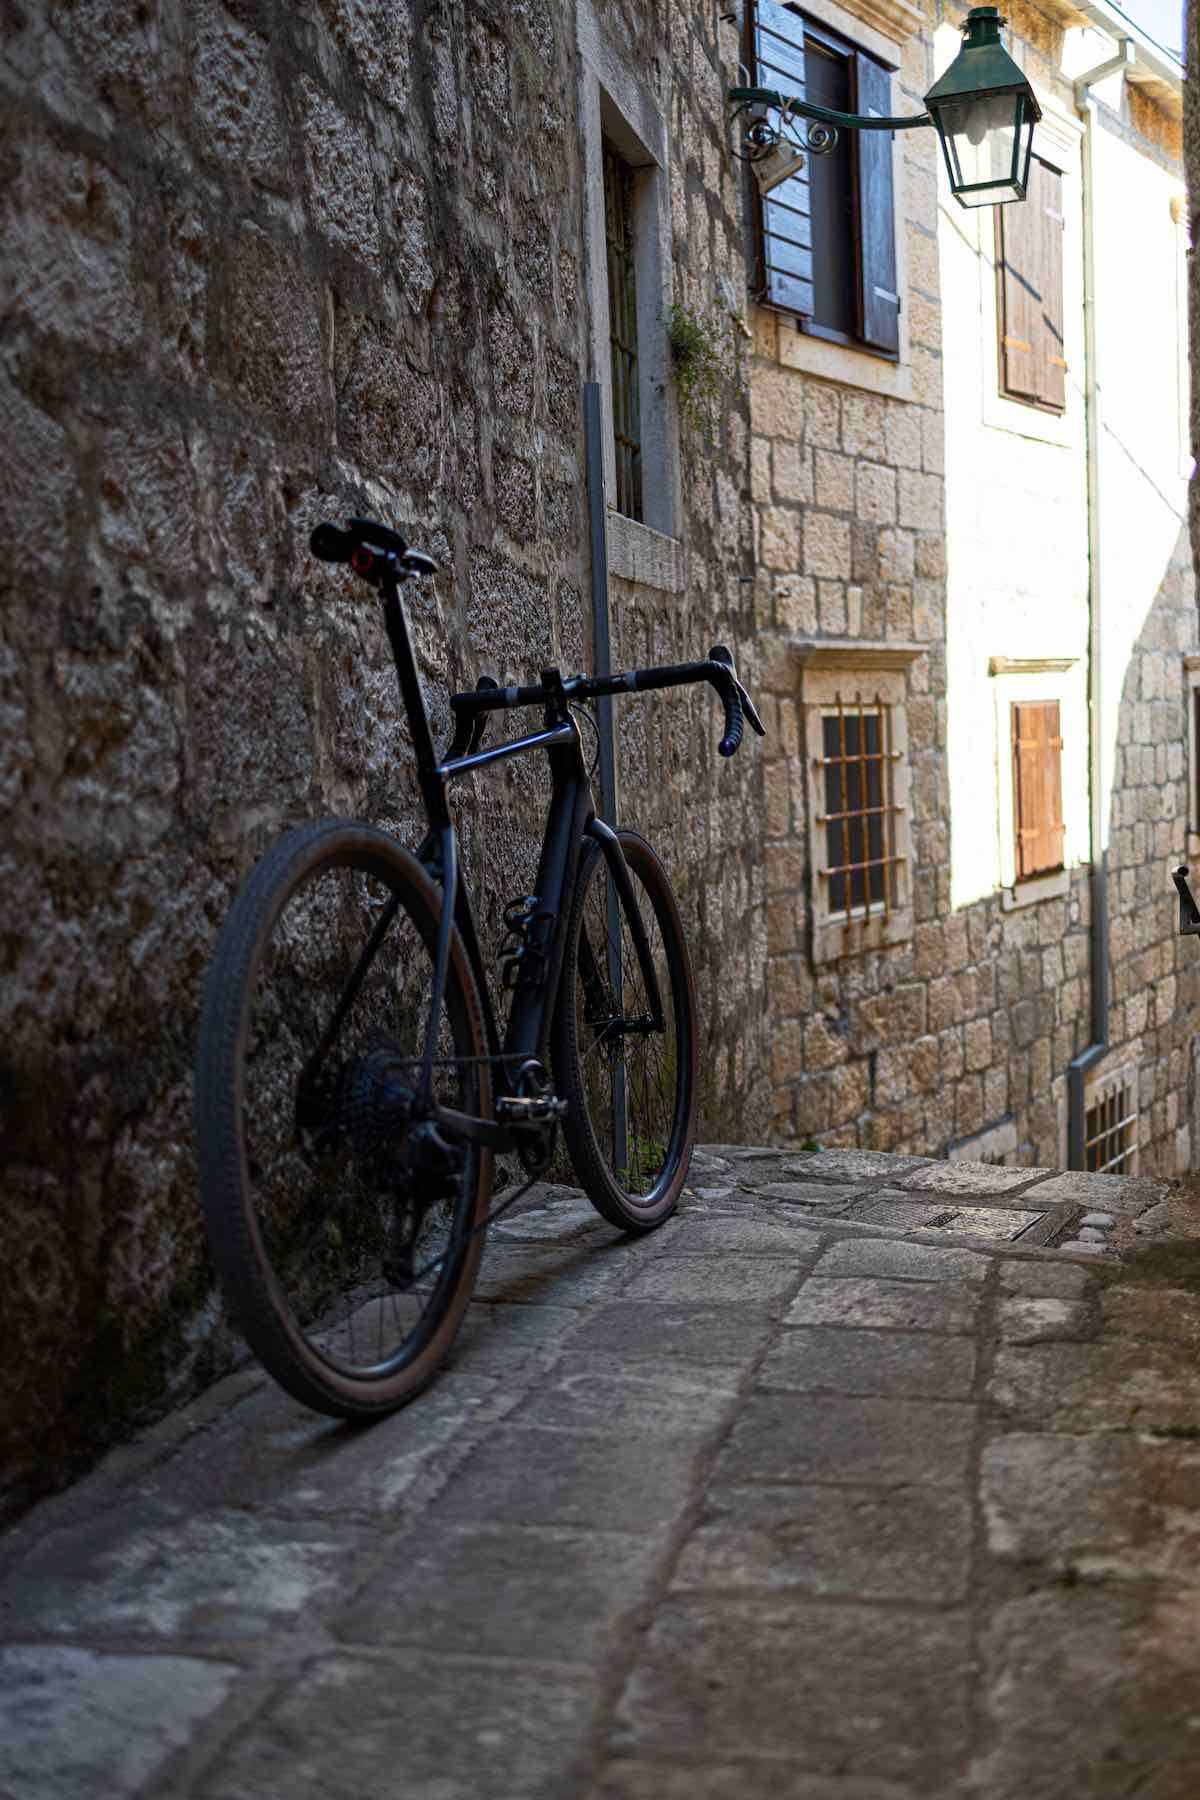 bikerumor pic of the day a road bike leans against a stone building in a narrow stone paved alley in croatia.